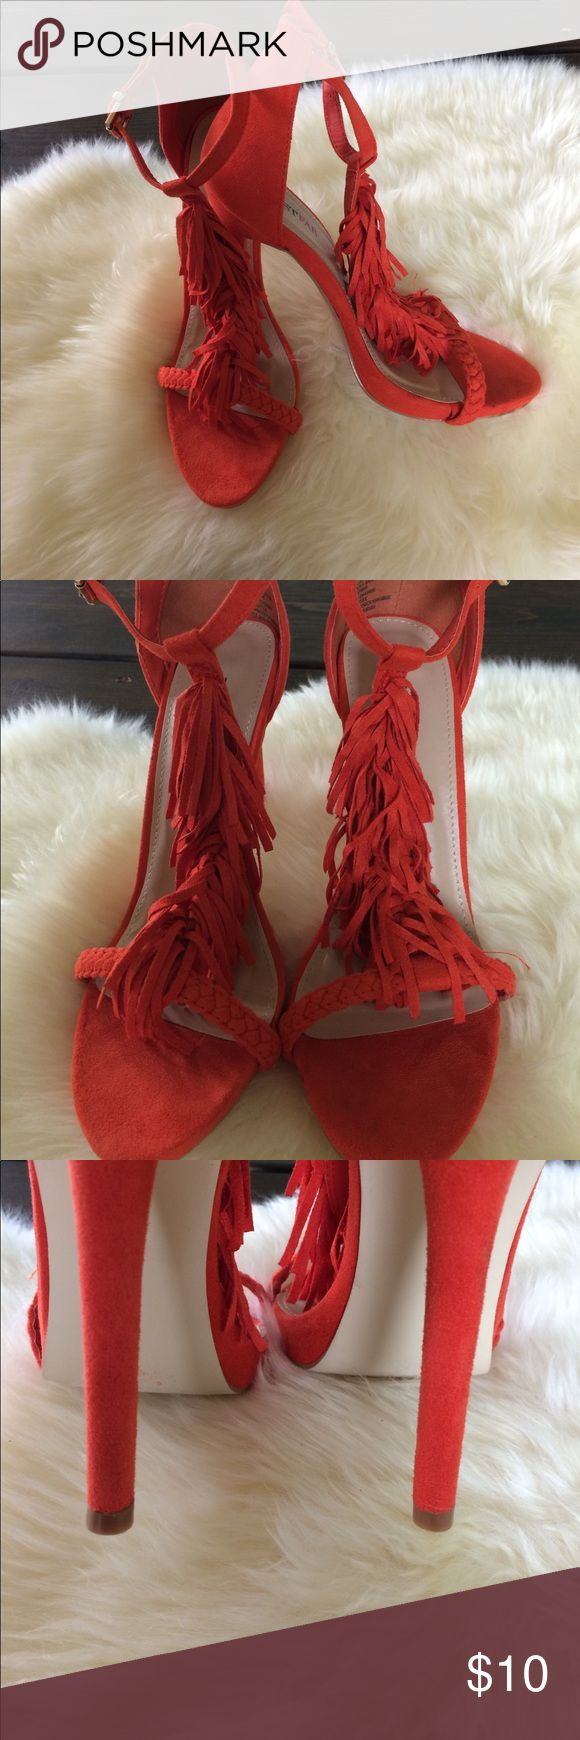 "Fringe heels Reddish orange strappy heels with fringe detail. Great with a cocktail dress or jeans and a T. They have 4.5"" heel. They are a size 7.5 but run approx 1/2 size big. I love them but they are too big for me. 😕 JustFab Shoes Heels"